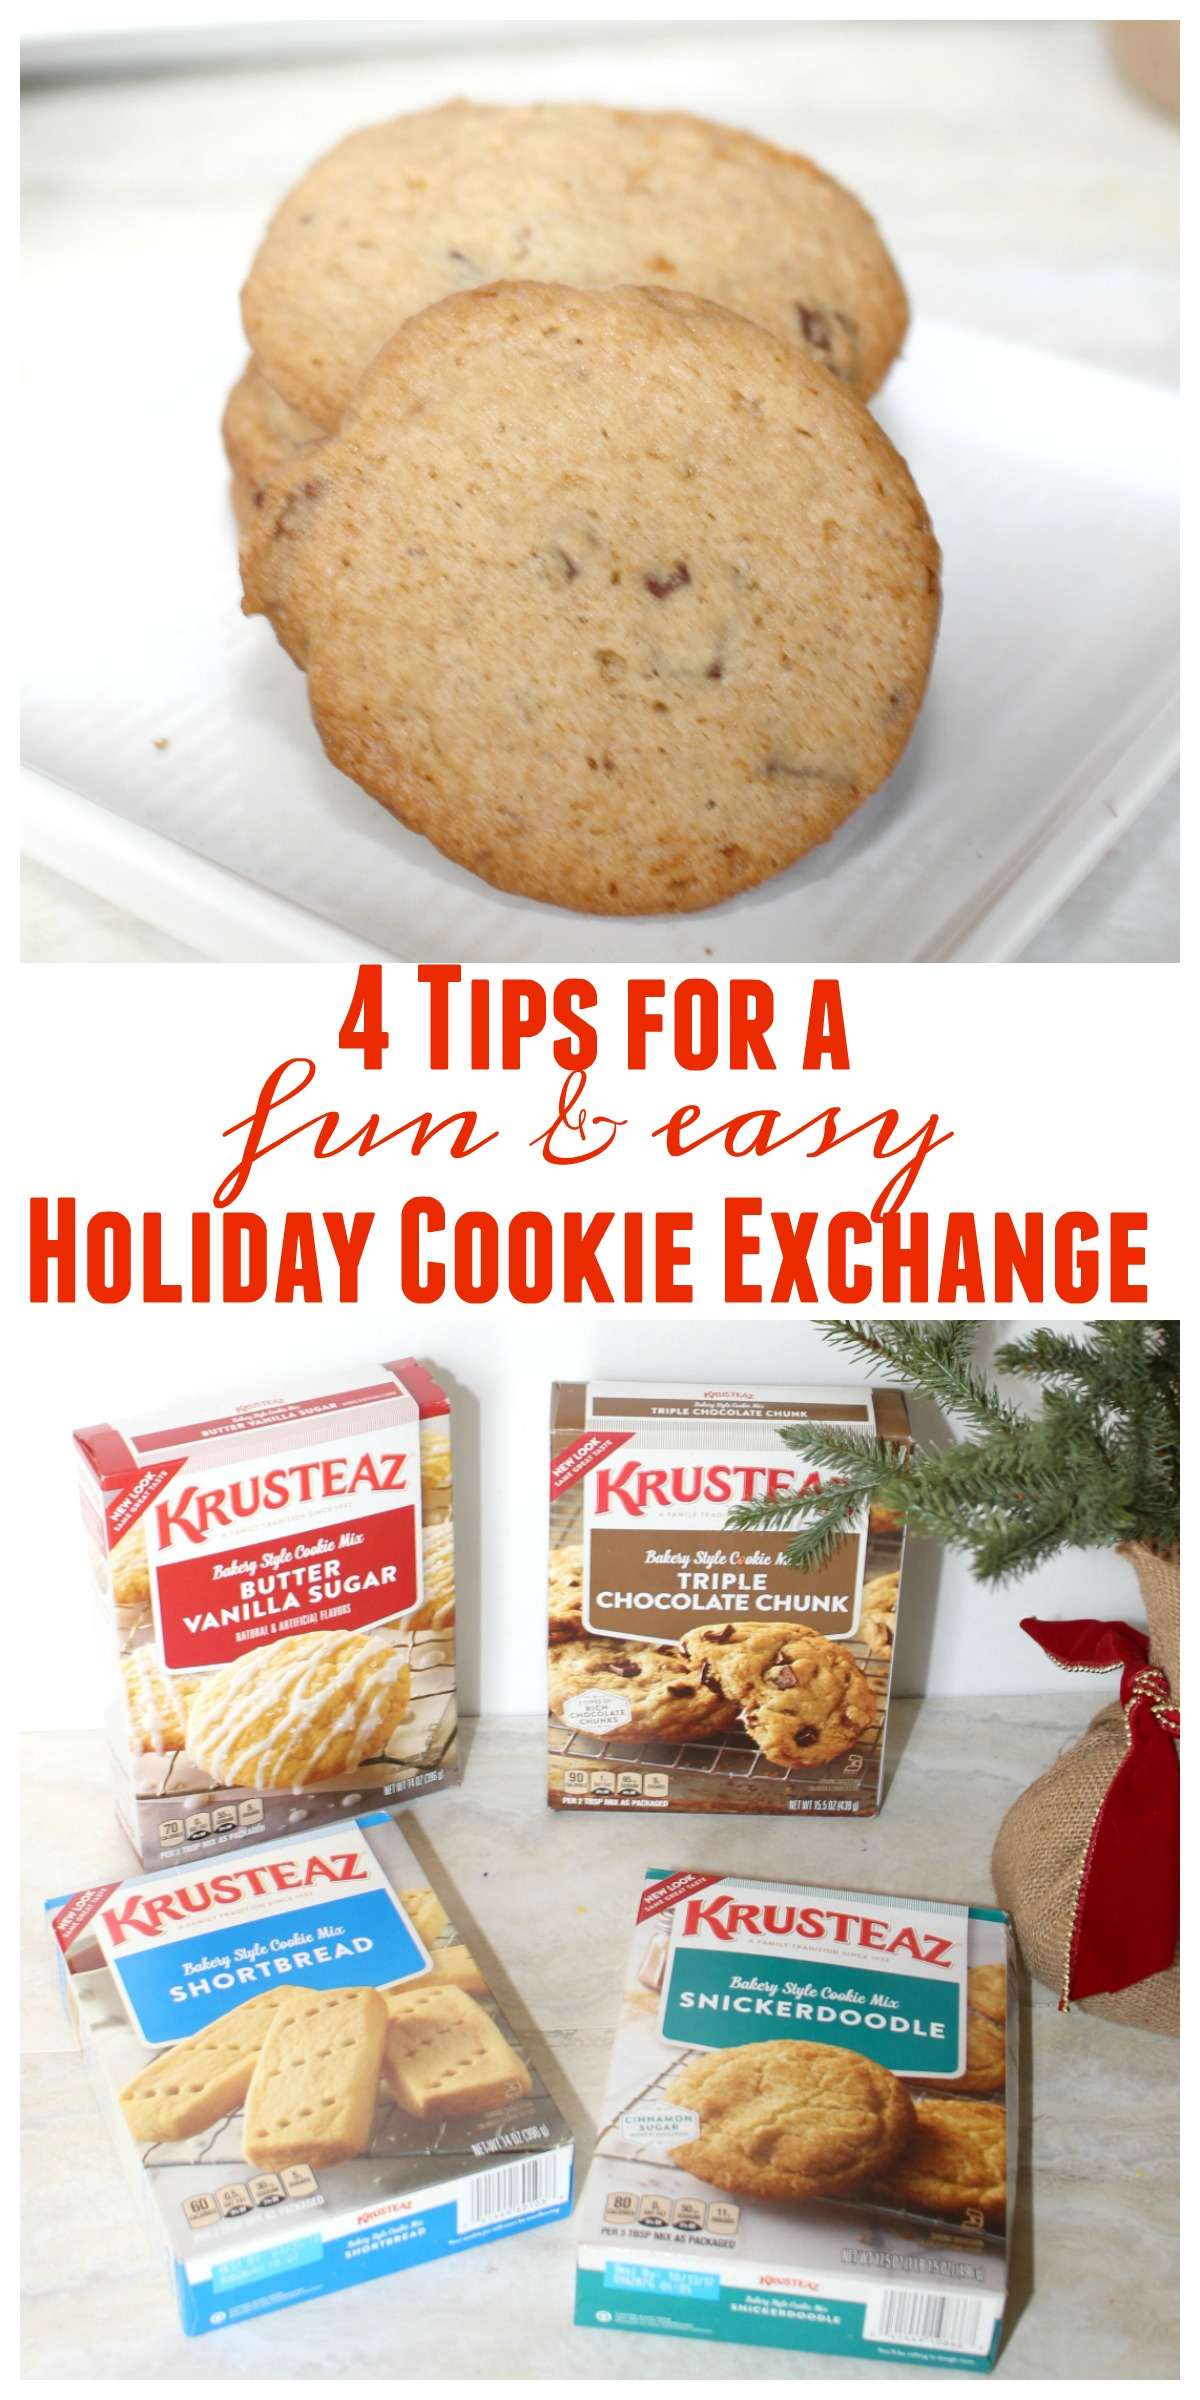 Cookie Exchange Tips